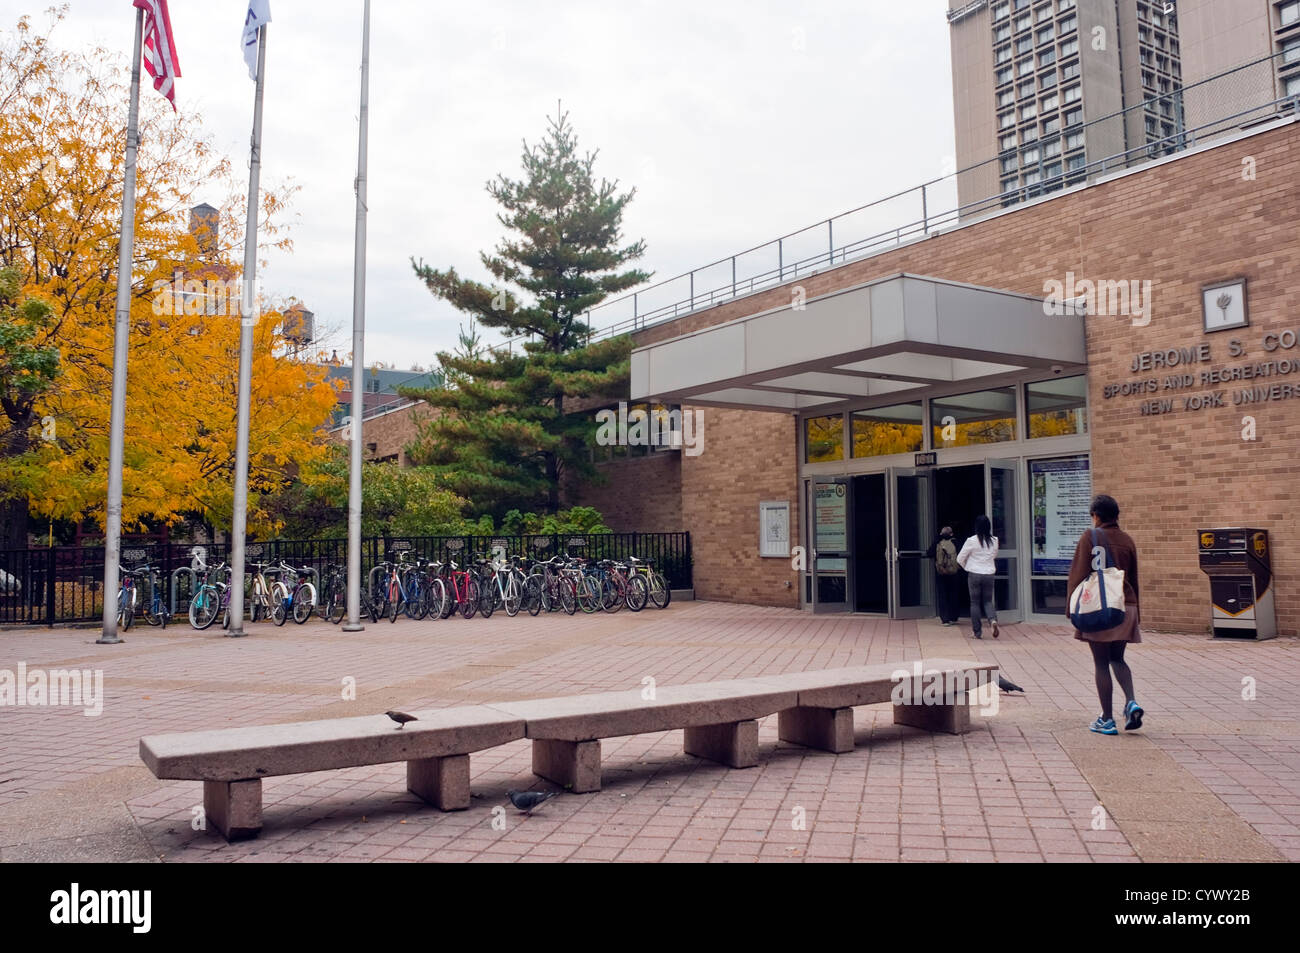 Coles Sports and Recreation Center entrance - Stock Image